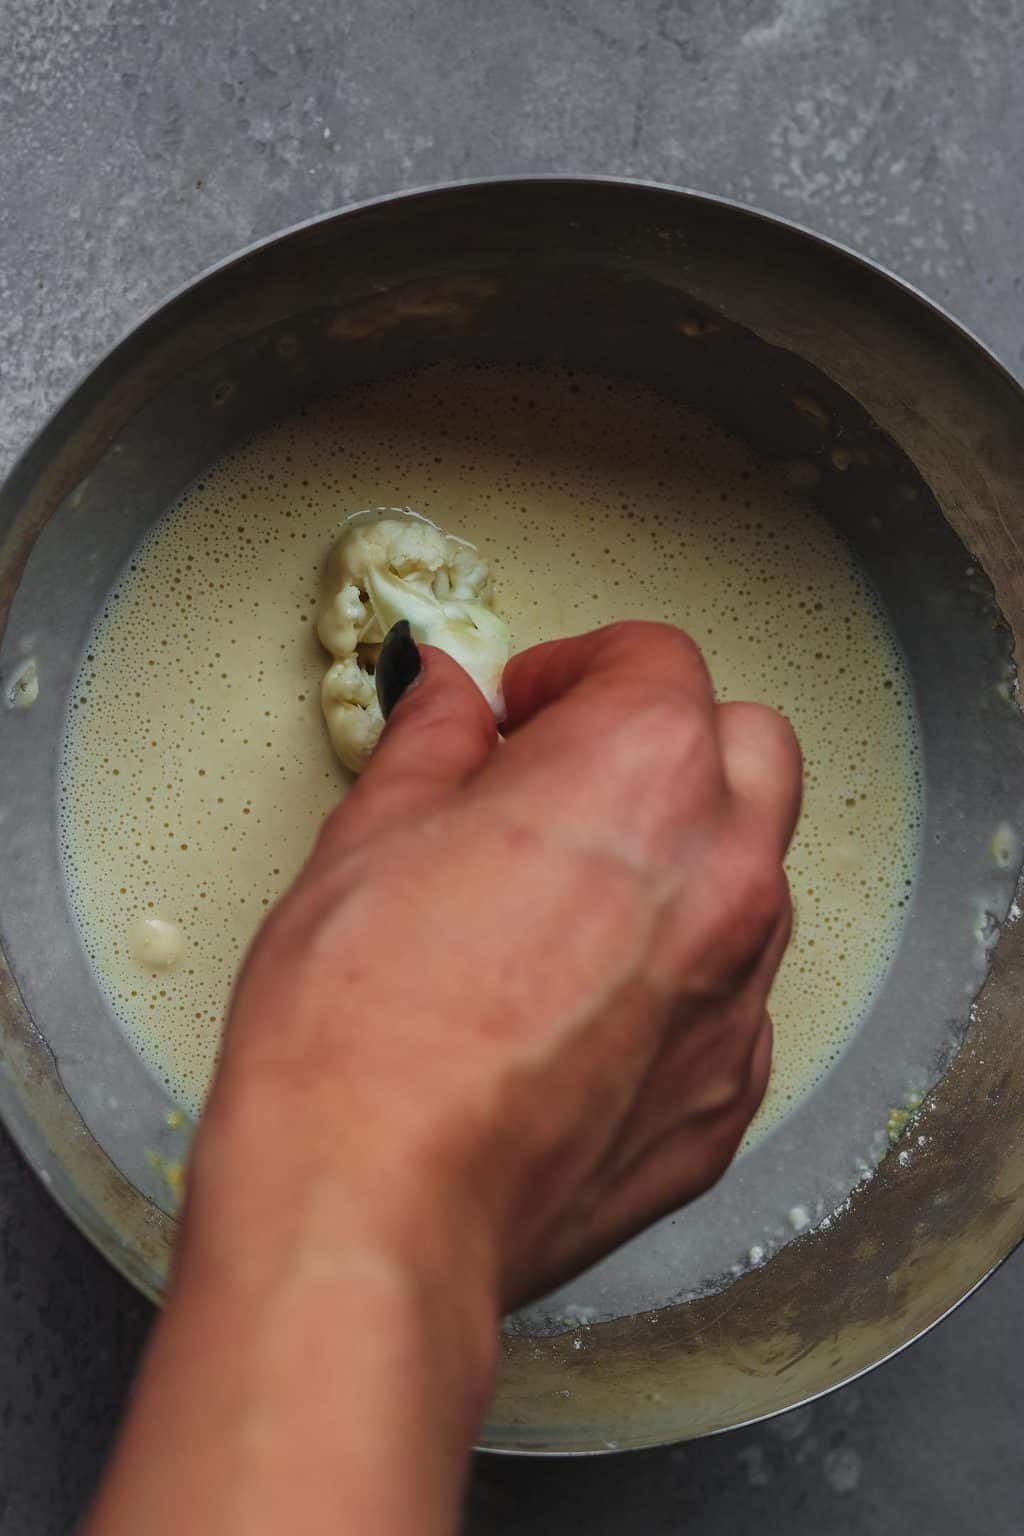 Cauliflower being dipped into batter